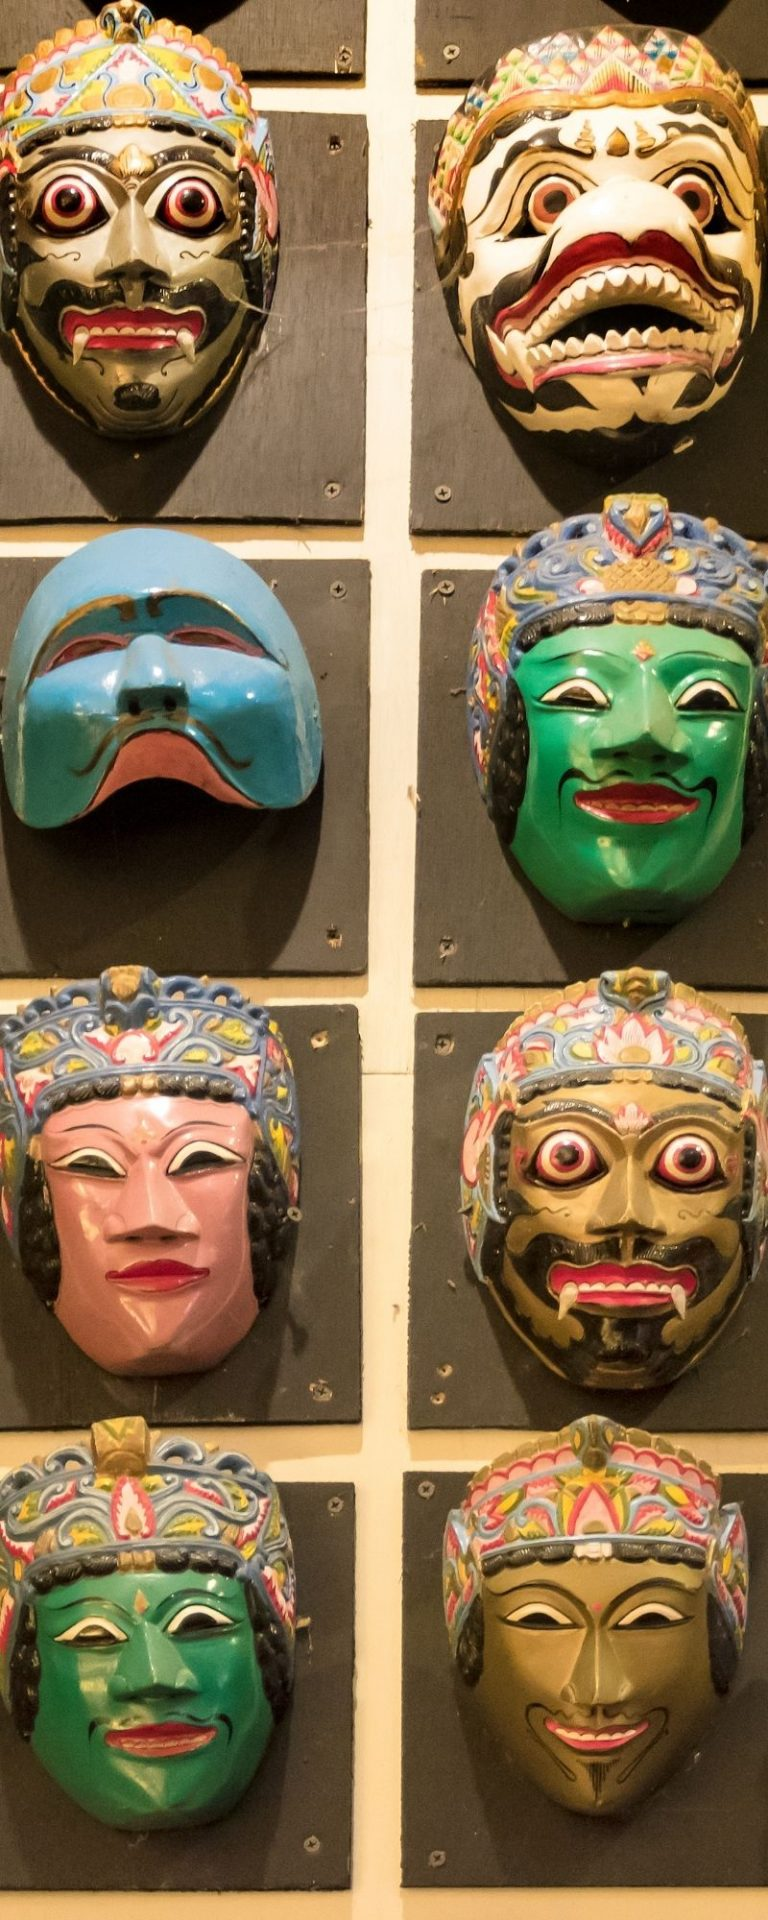 Traditional Masks Made in Malang, Indonesia